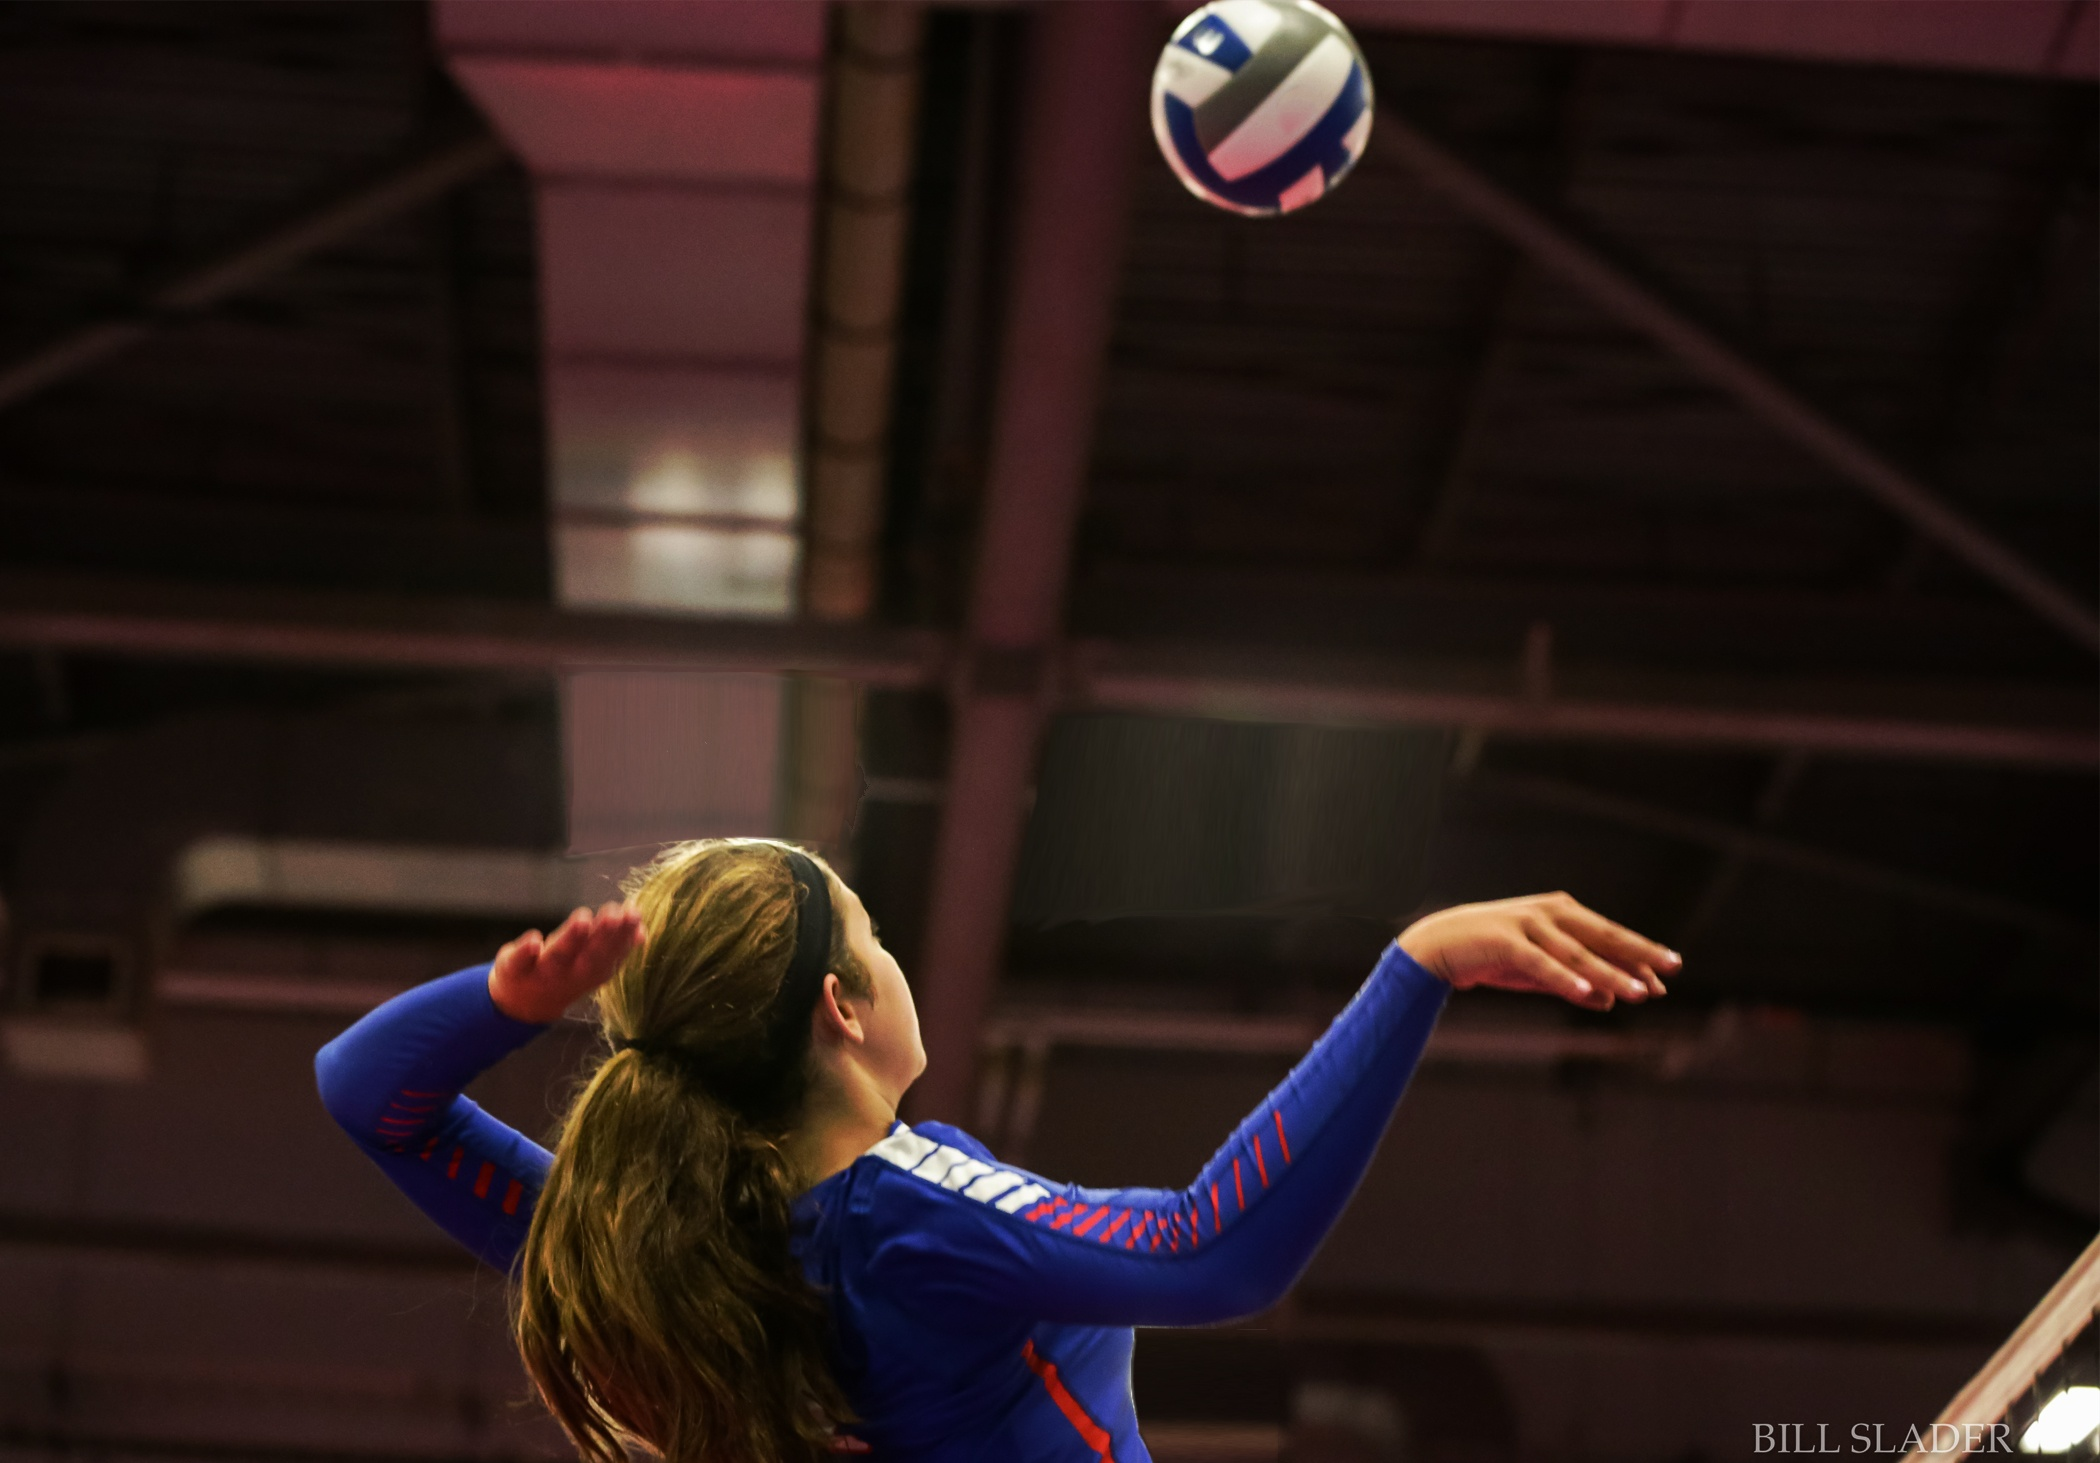 Volleyball Power Circuit